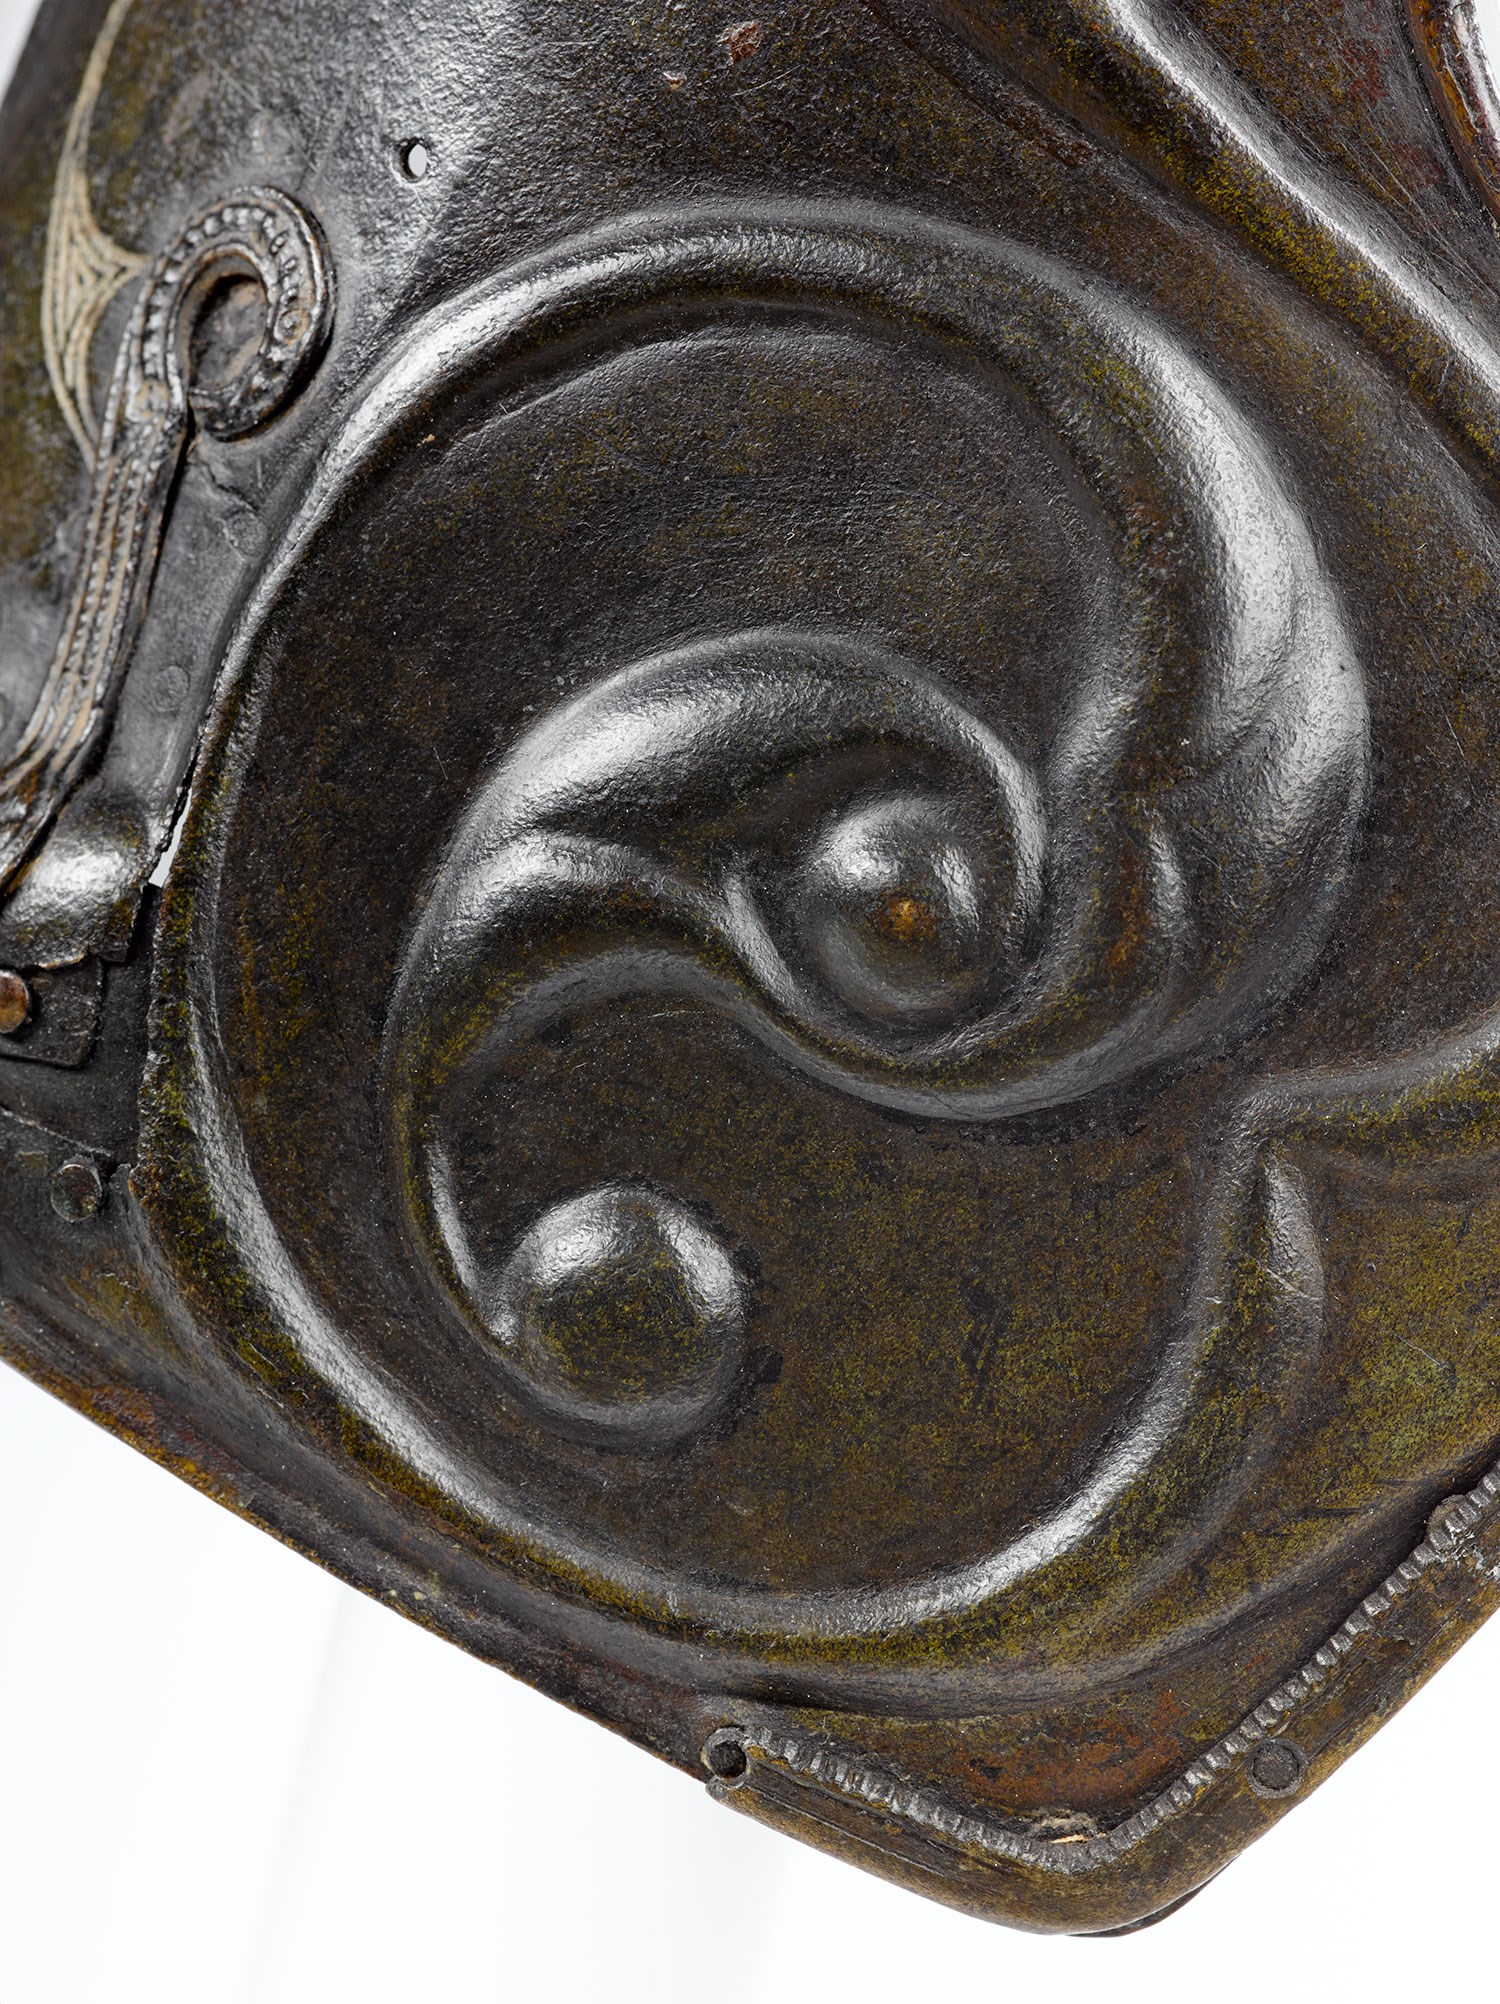 Scrolling repousse decoration on the pony cap